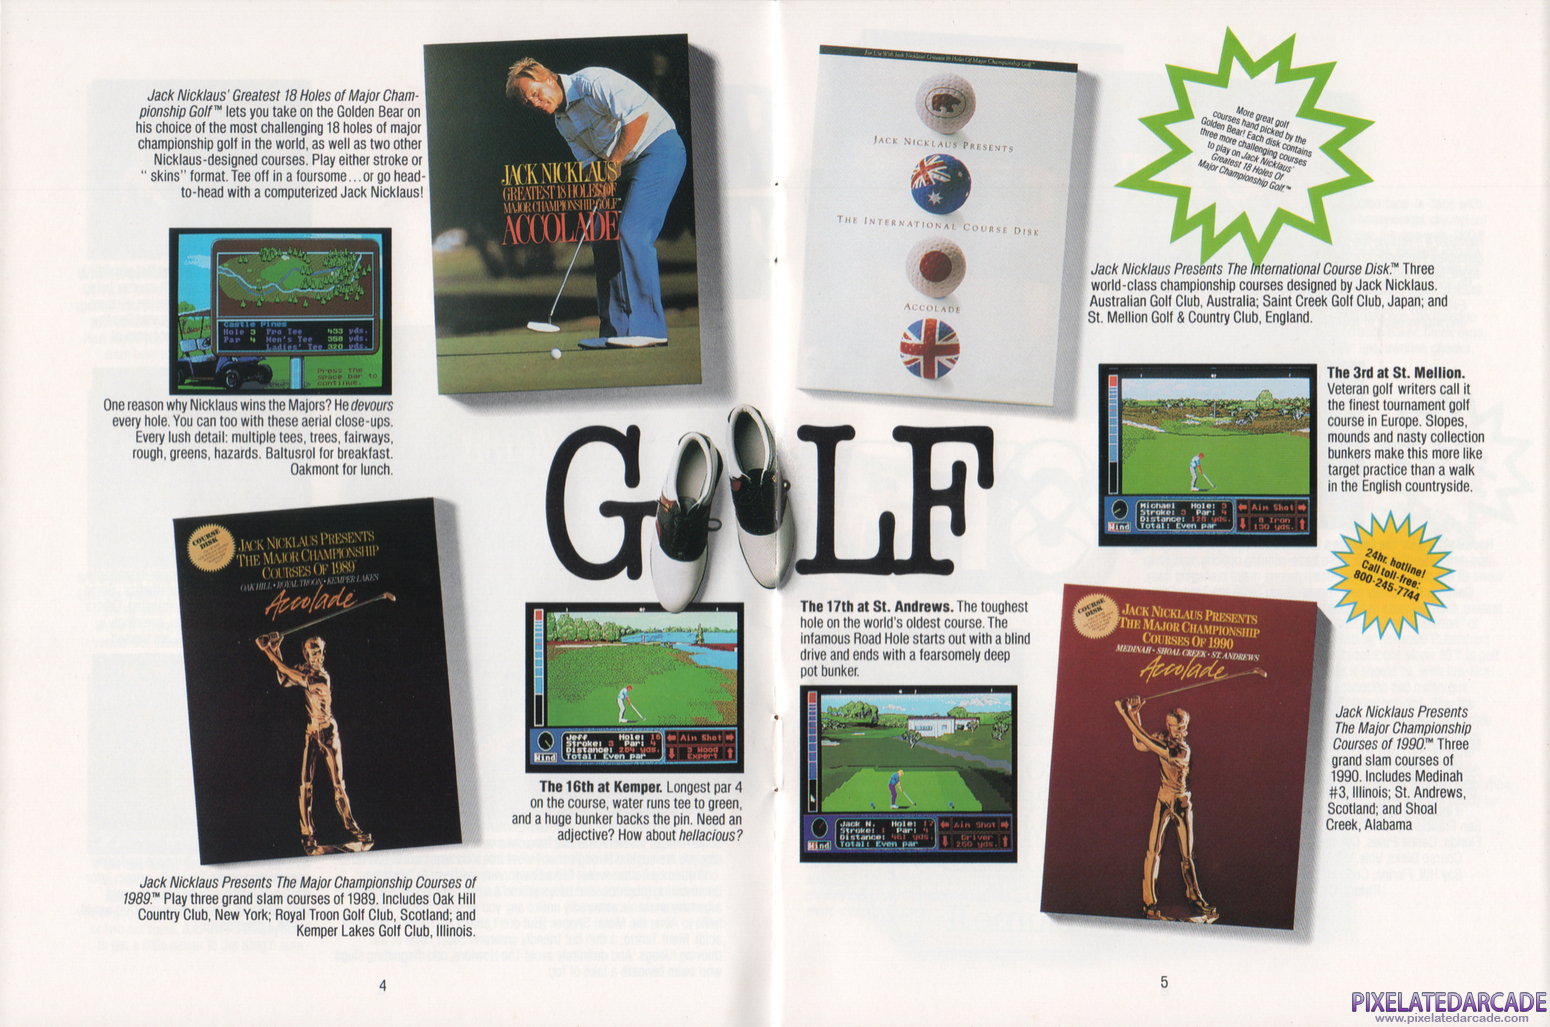 Jack Nicklaus' Greatest 18 Holes of Major Championship Golf Advertisement: Jack Nicklaus' Greatest 18 Holes of Major Championship Golf in the Accolade 1990 product catalog